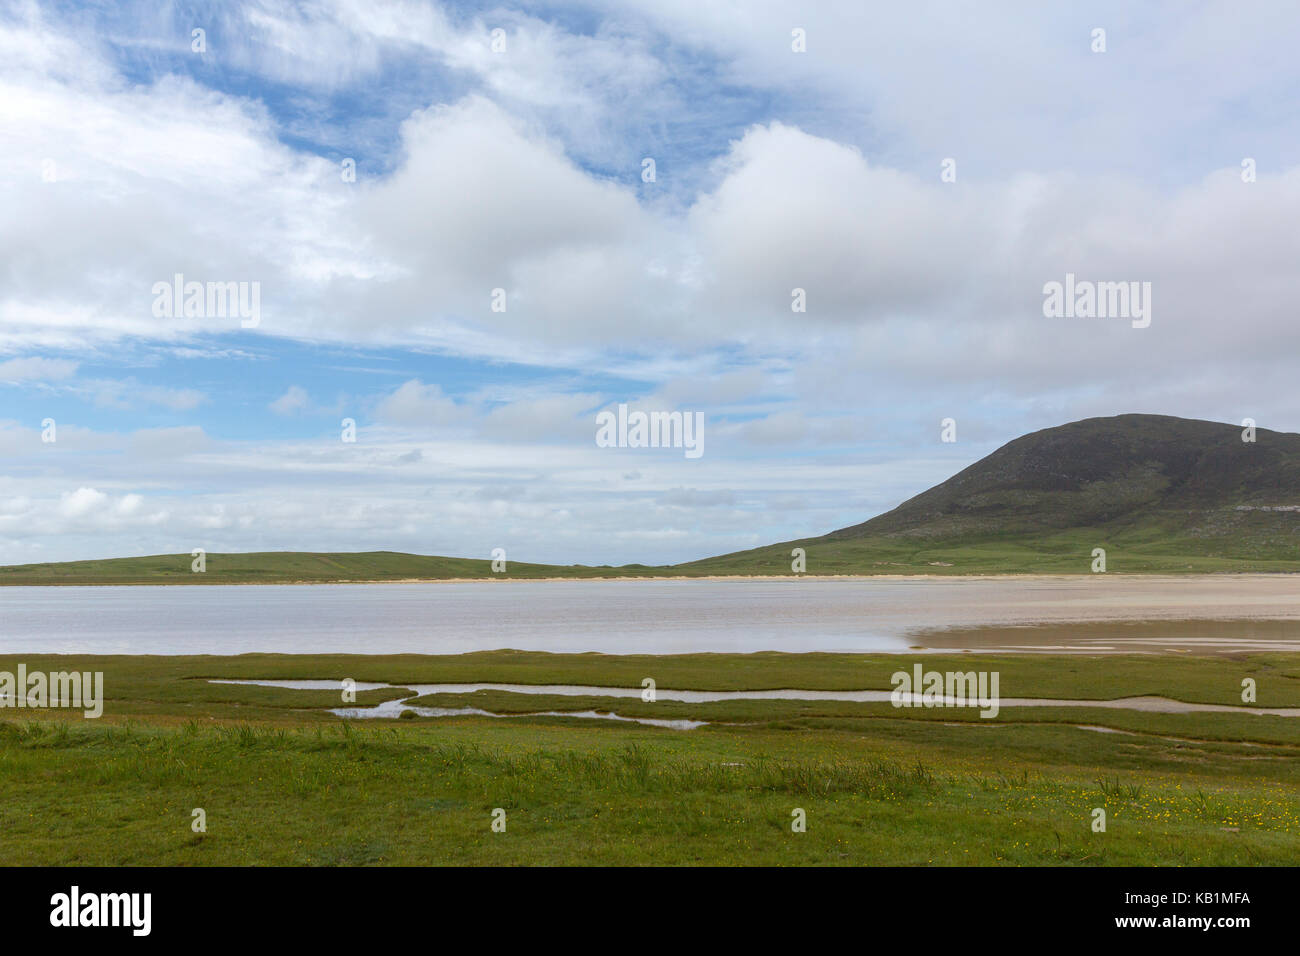 Lewis and Harris island, Outer Hebrides, Scotland - Stock Image